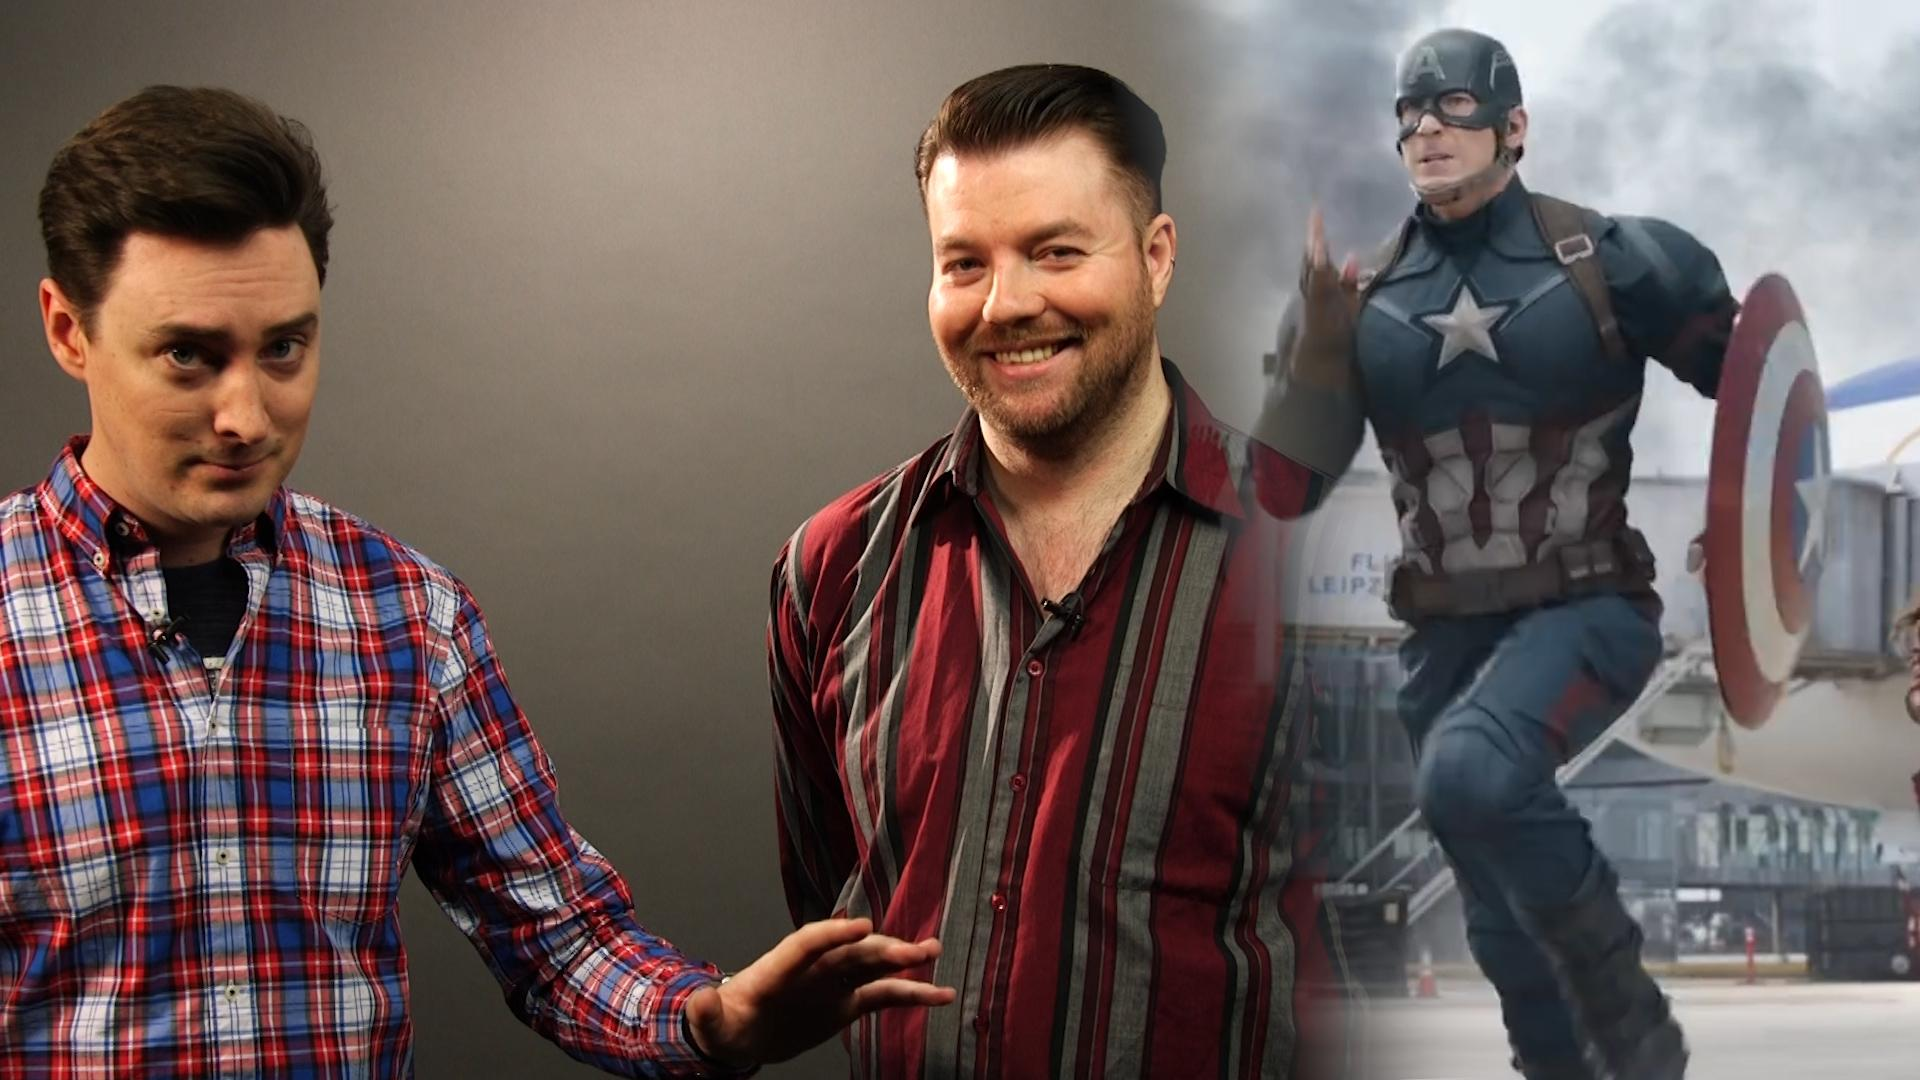 5 'Captain America: Civil War' spoilers we must discuss